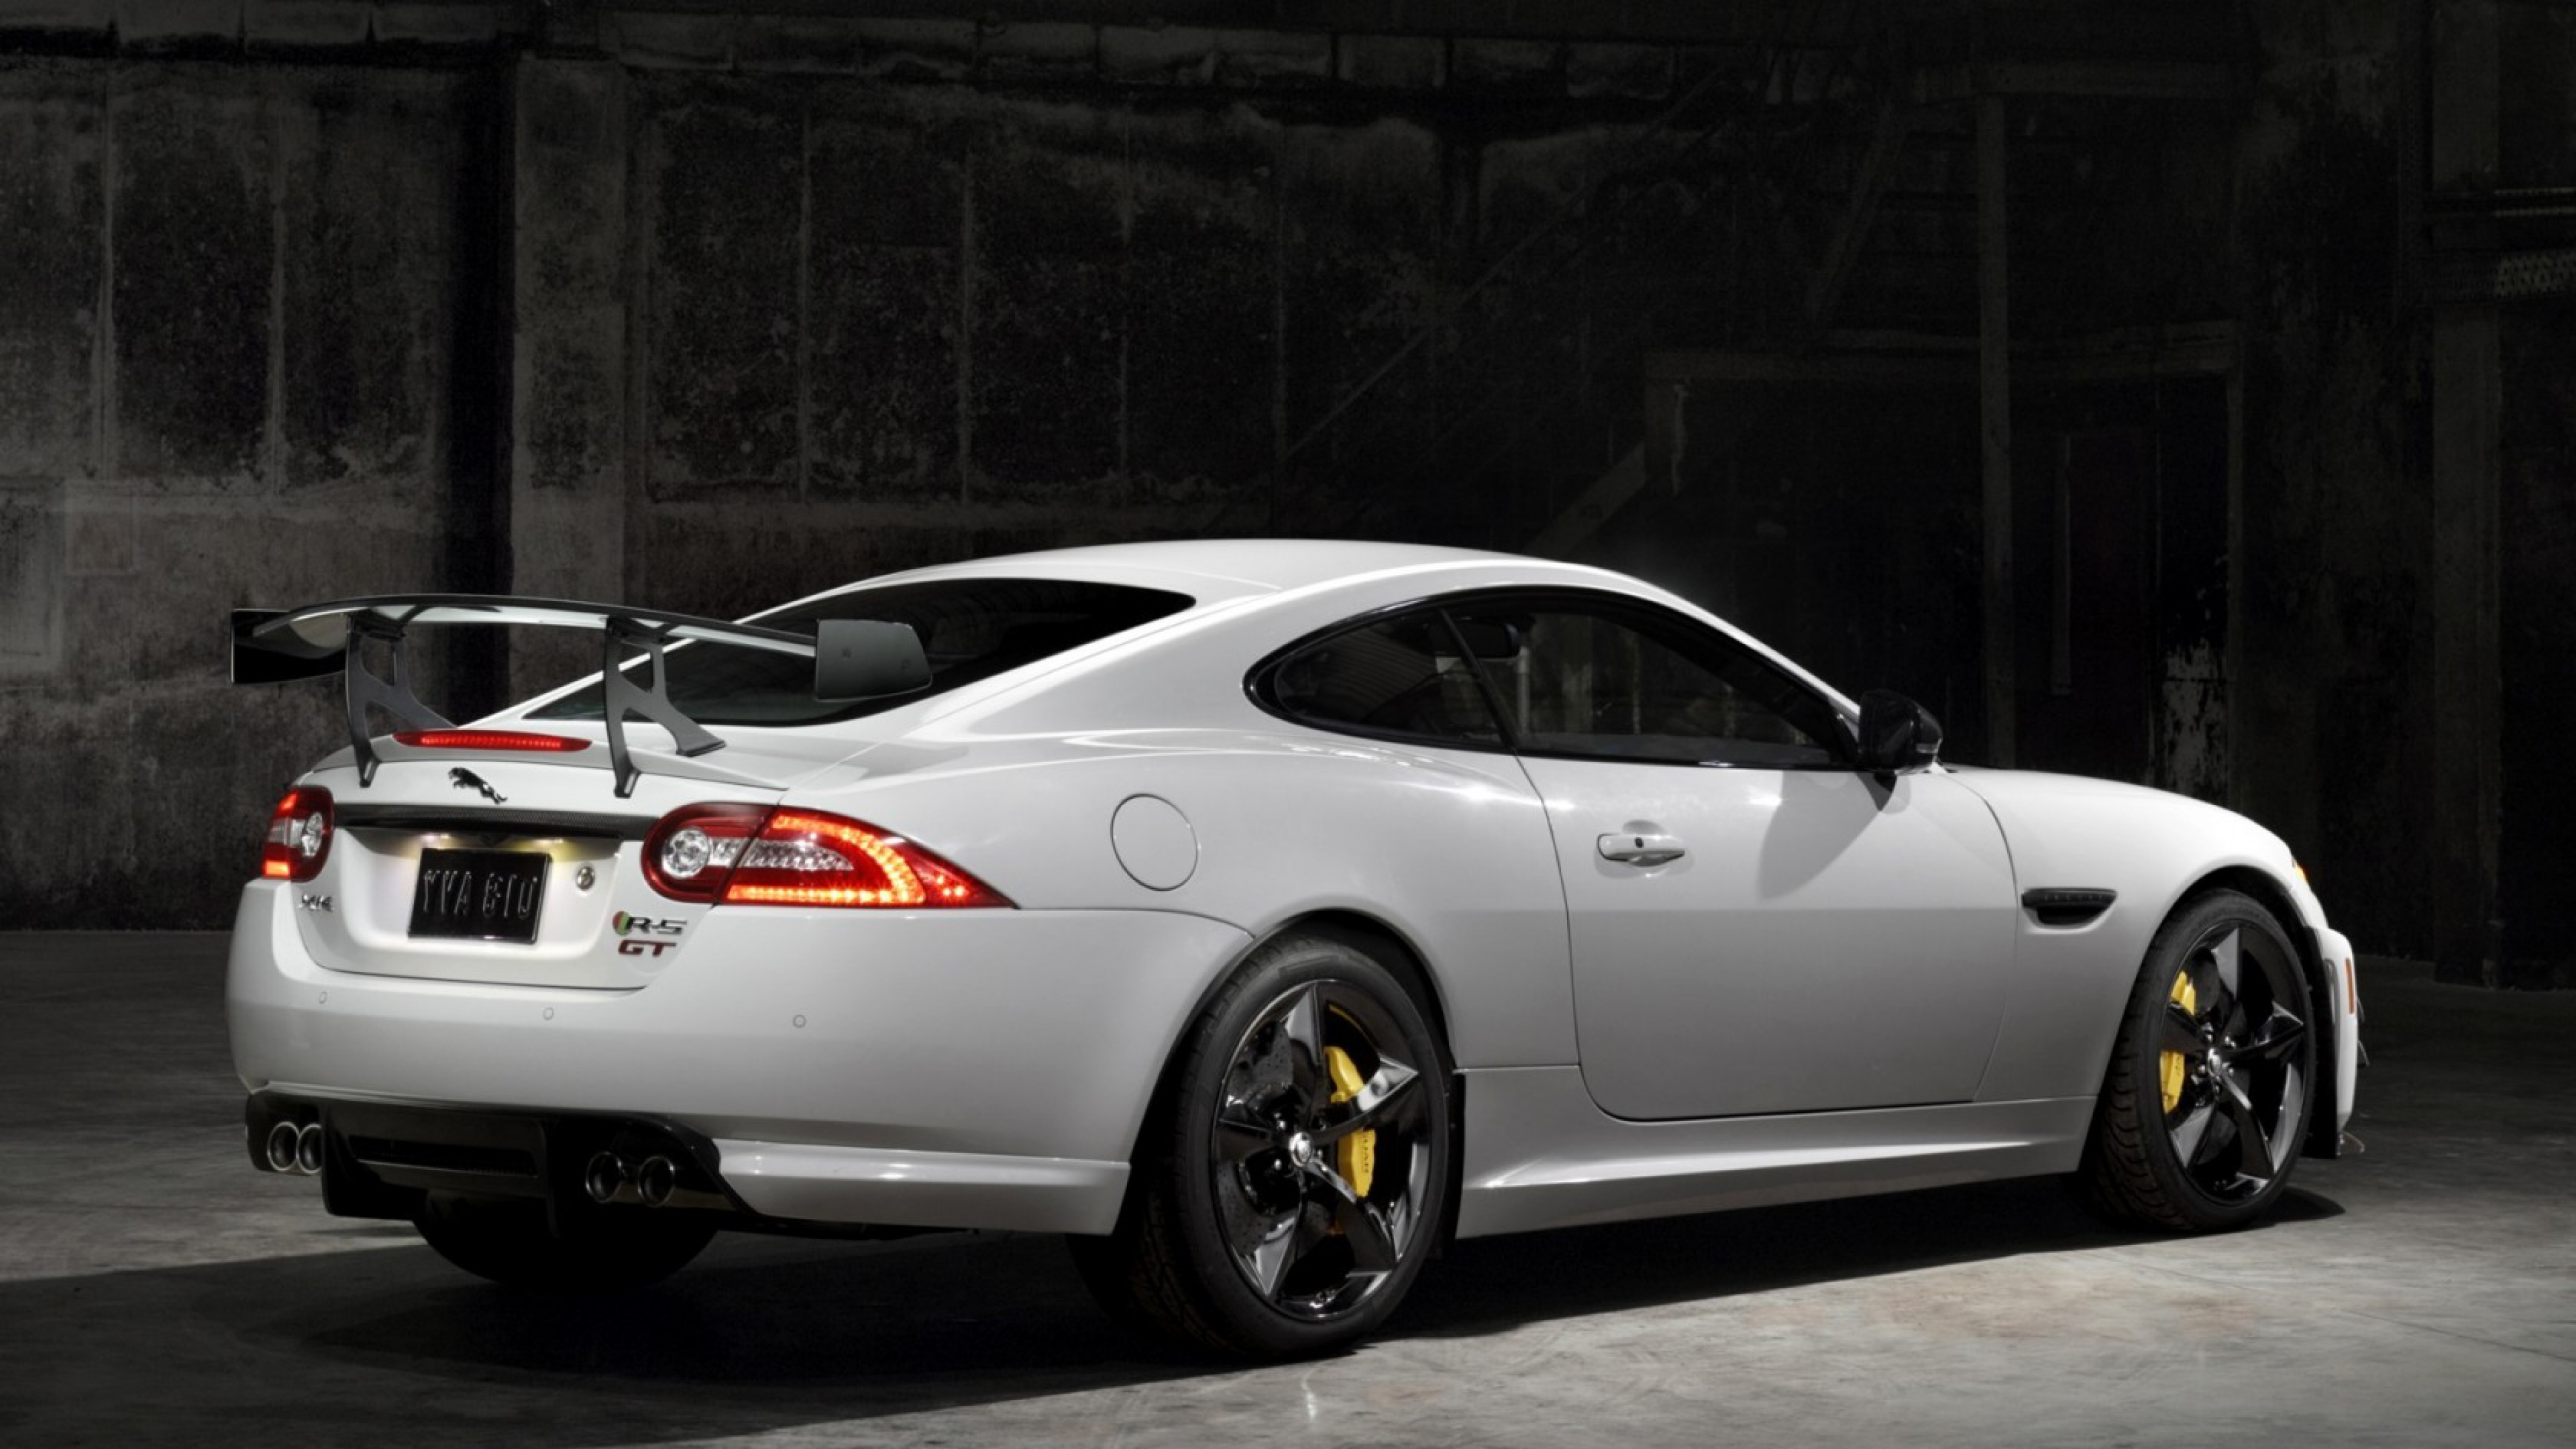 White Jaguar Car Wallpaper High Definition Is Cool Wallpapers